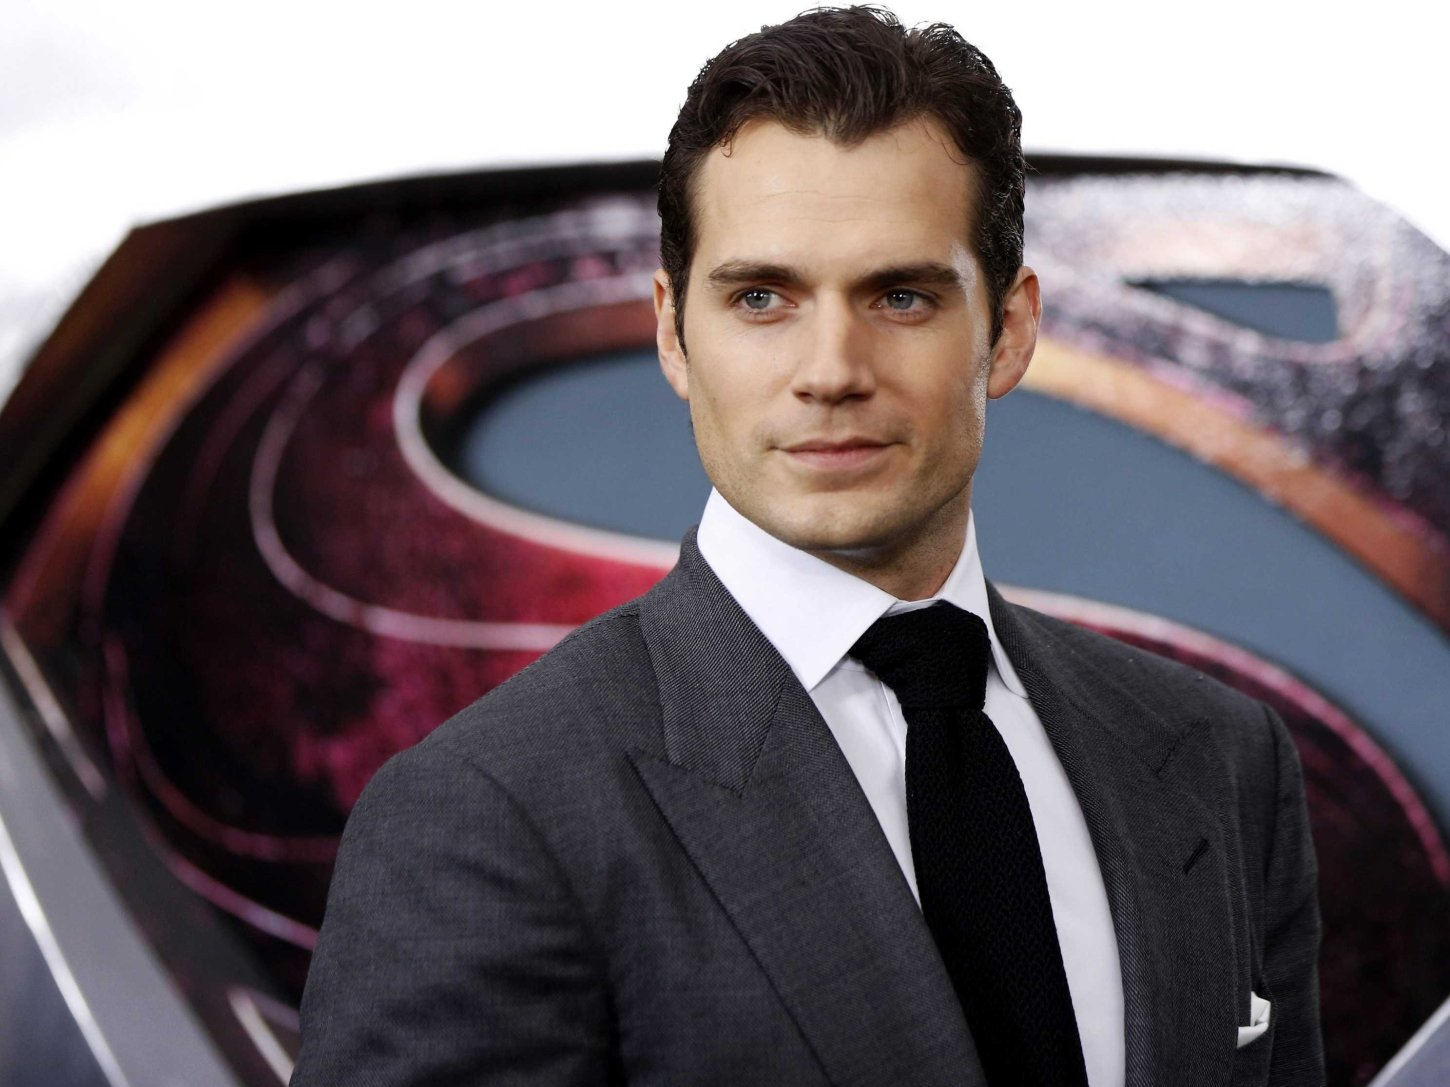 The Man of Steel, Henry Cavill, Joins Mission: Impossible 6!